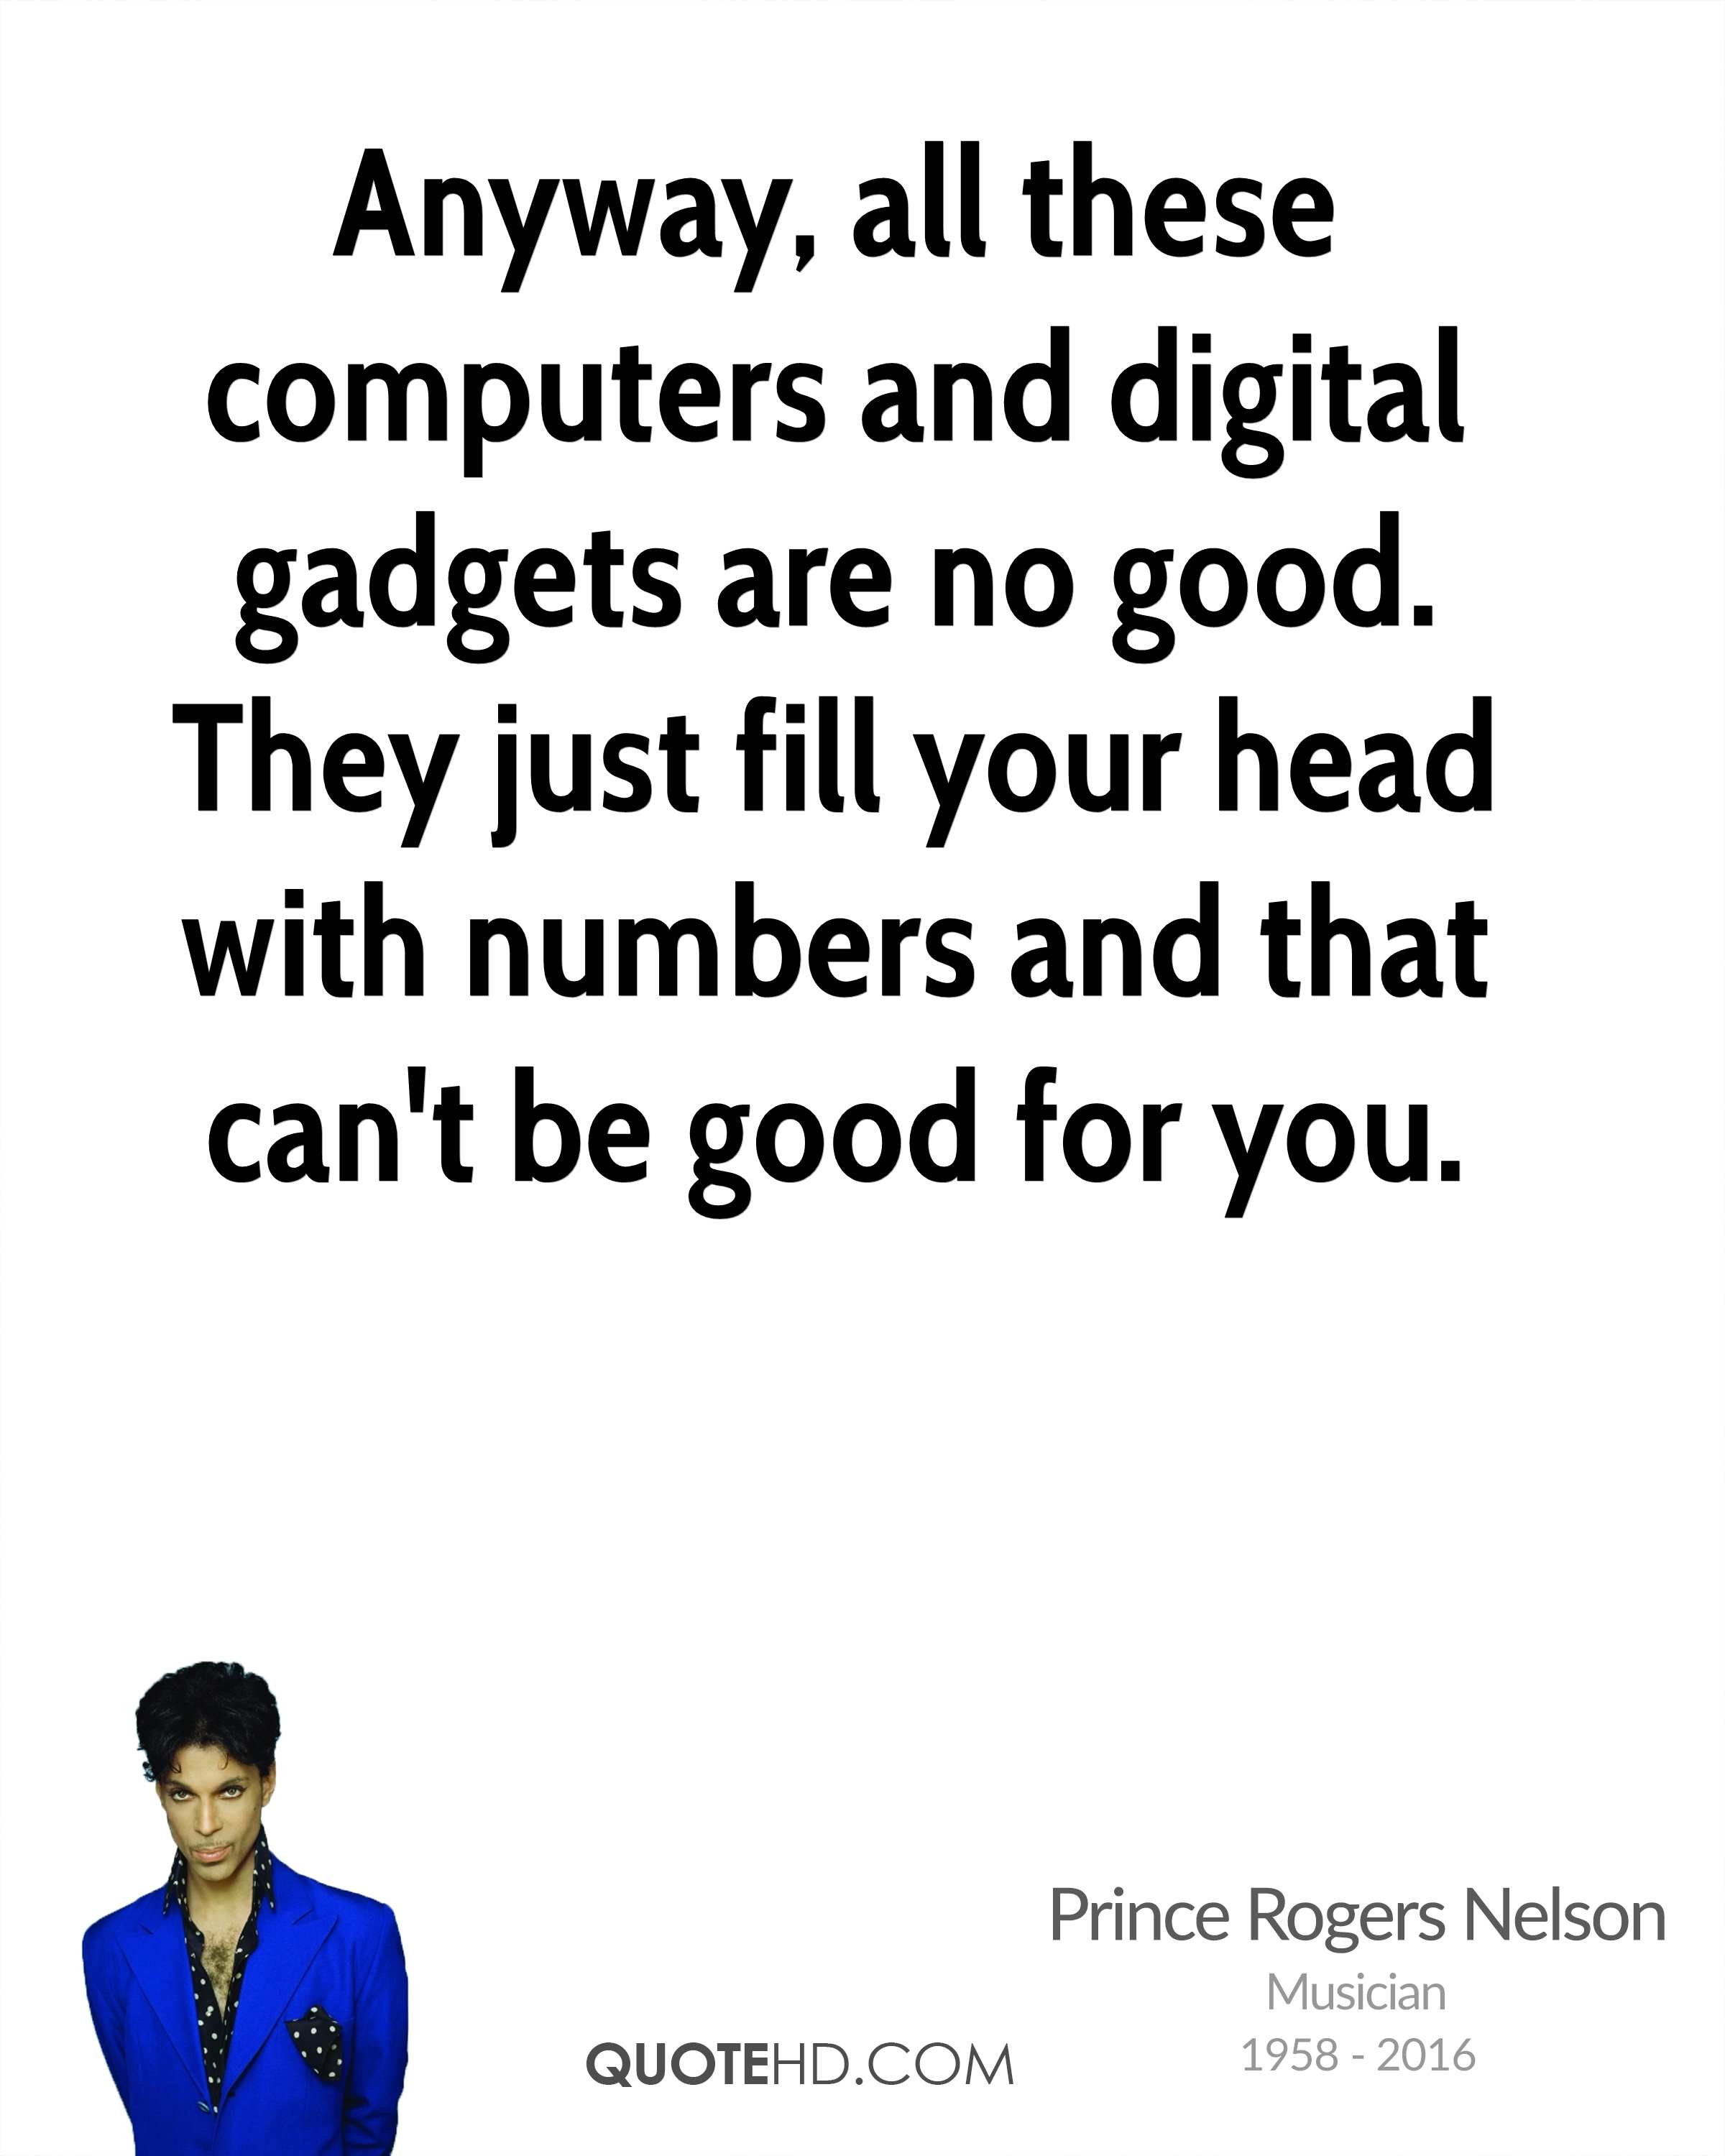 Anyway, all these computers and digital gadgets are no good. They just fill your head with numbers and that can't be good for you.